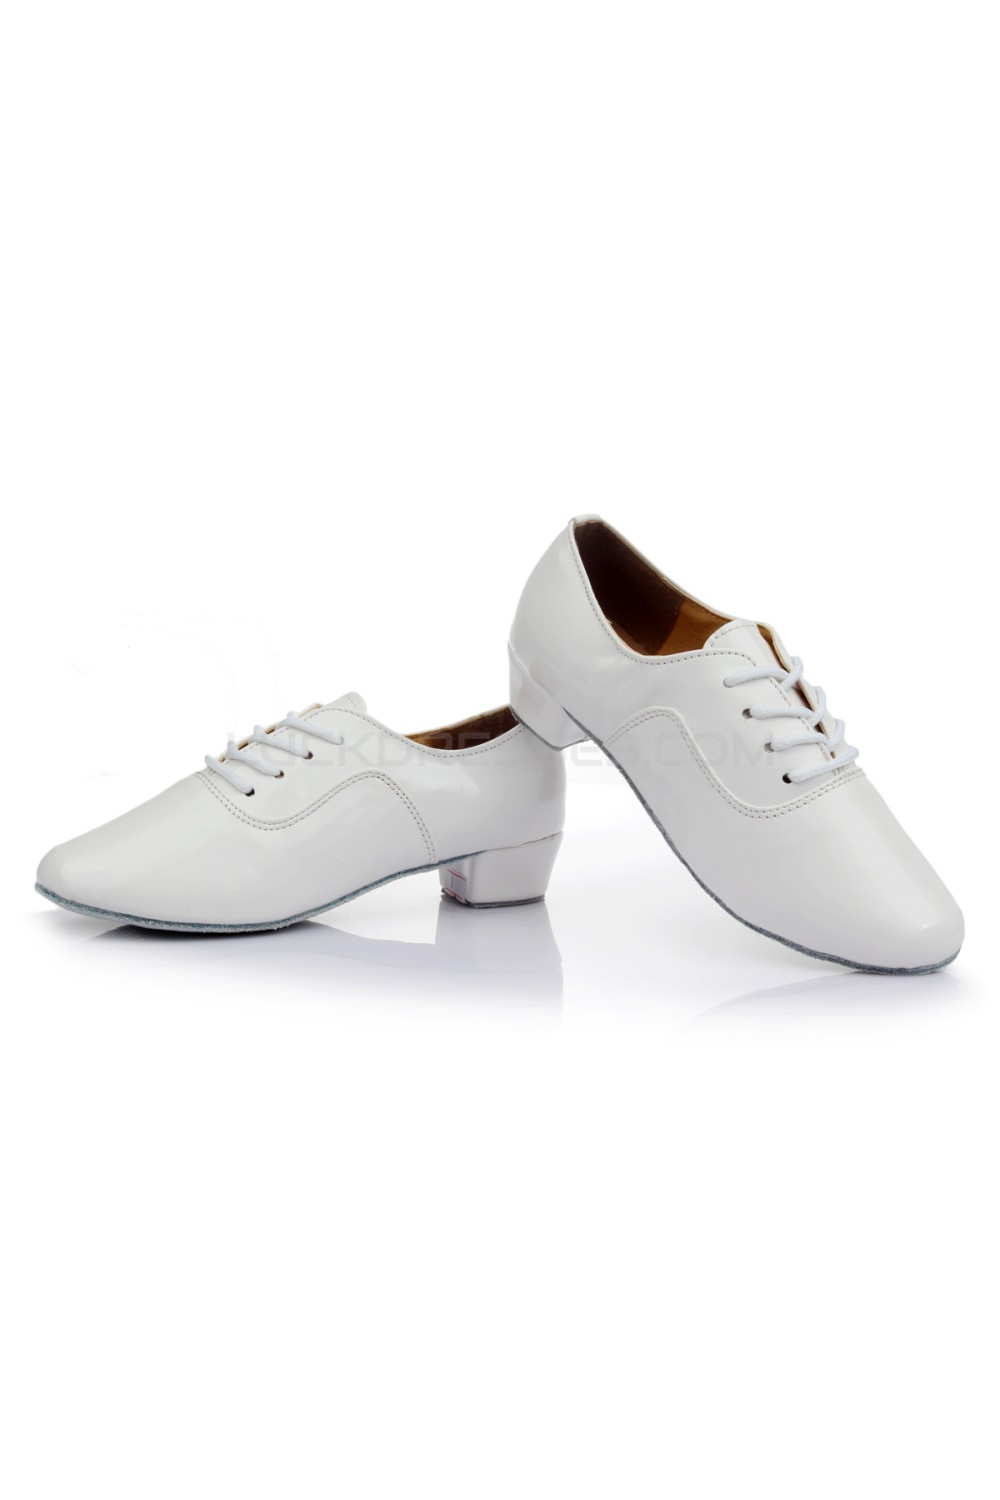 84a45a2fd Men's Kids' White Leatherette Modern Ballroom Latin Dance Shoes Dance  Sneakers Flat Heel D603003